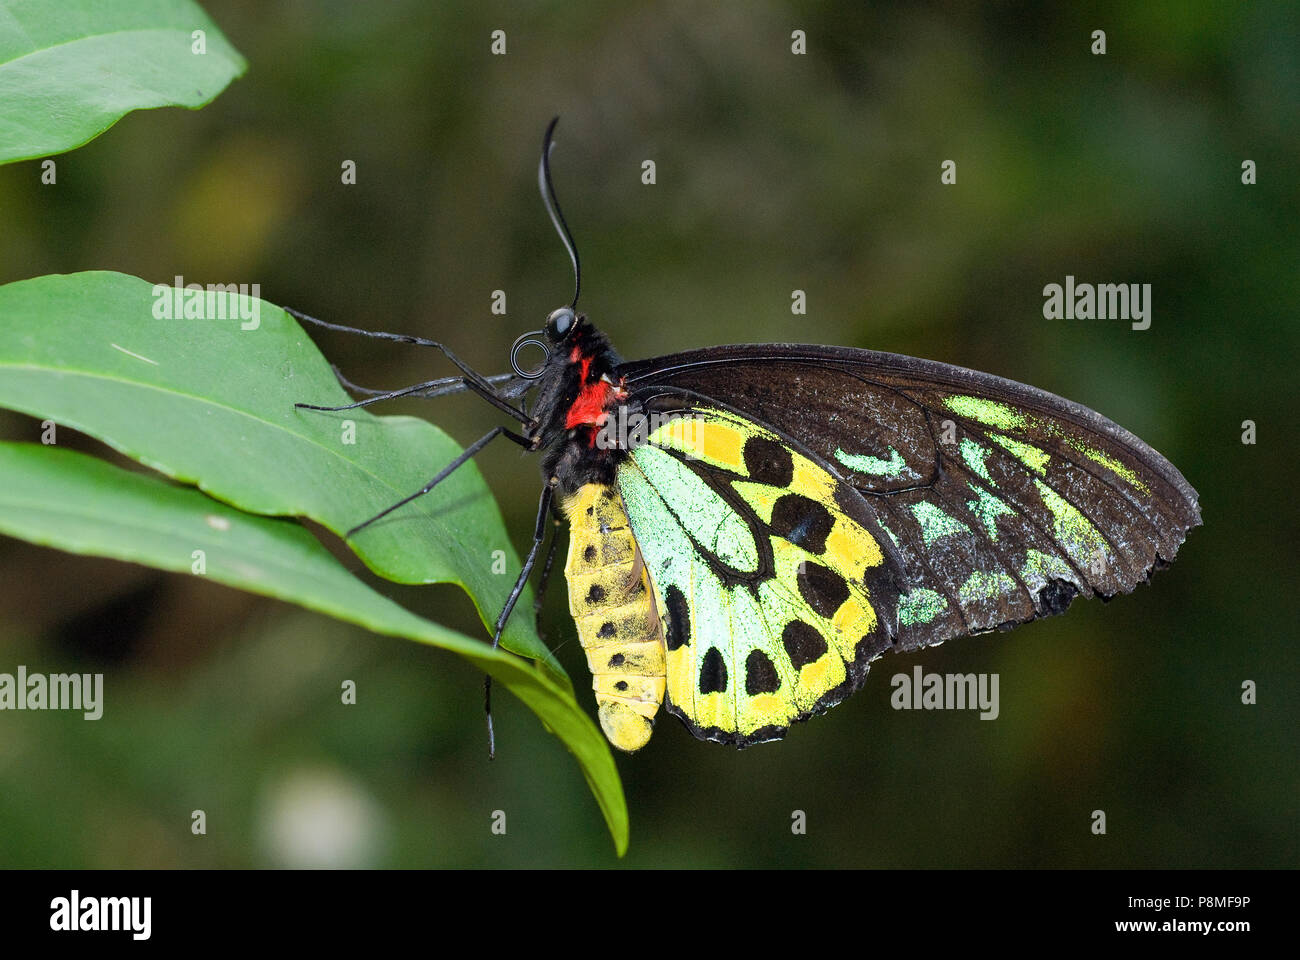 Cairns Birdwing (Ornithoptera euphorion), Magic Wings Butterfly Conservatory and Gardens, South Deerfield, Franklin County, Massachusetts, USA - Stock Image